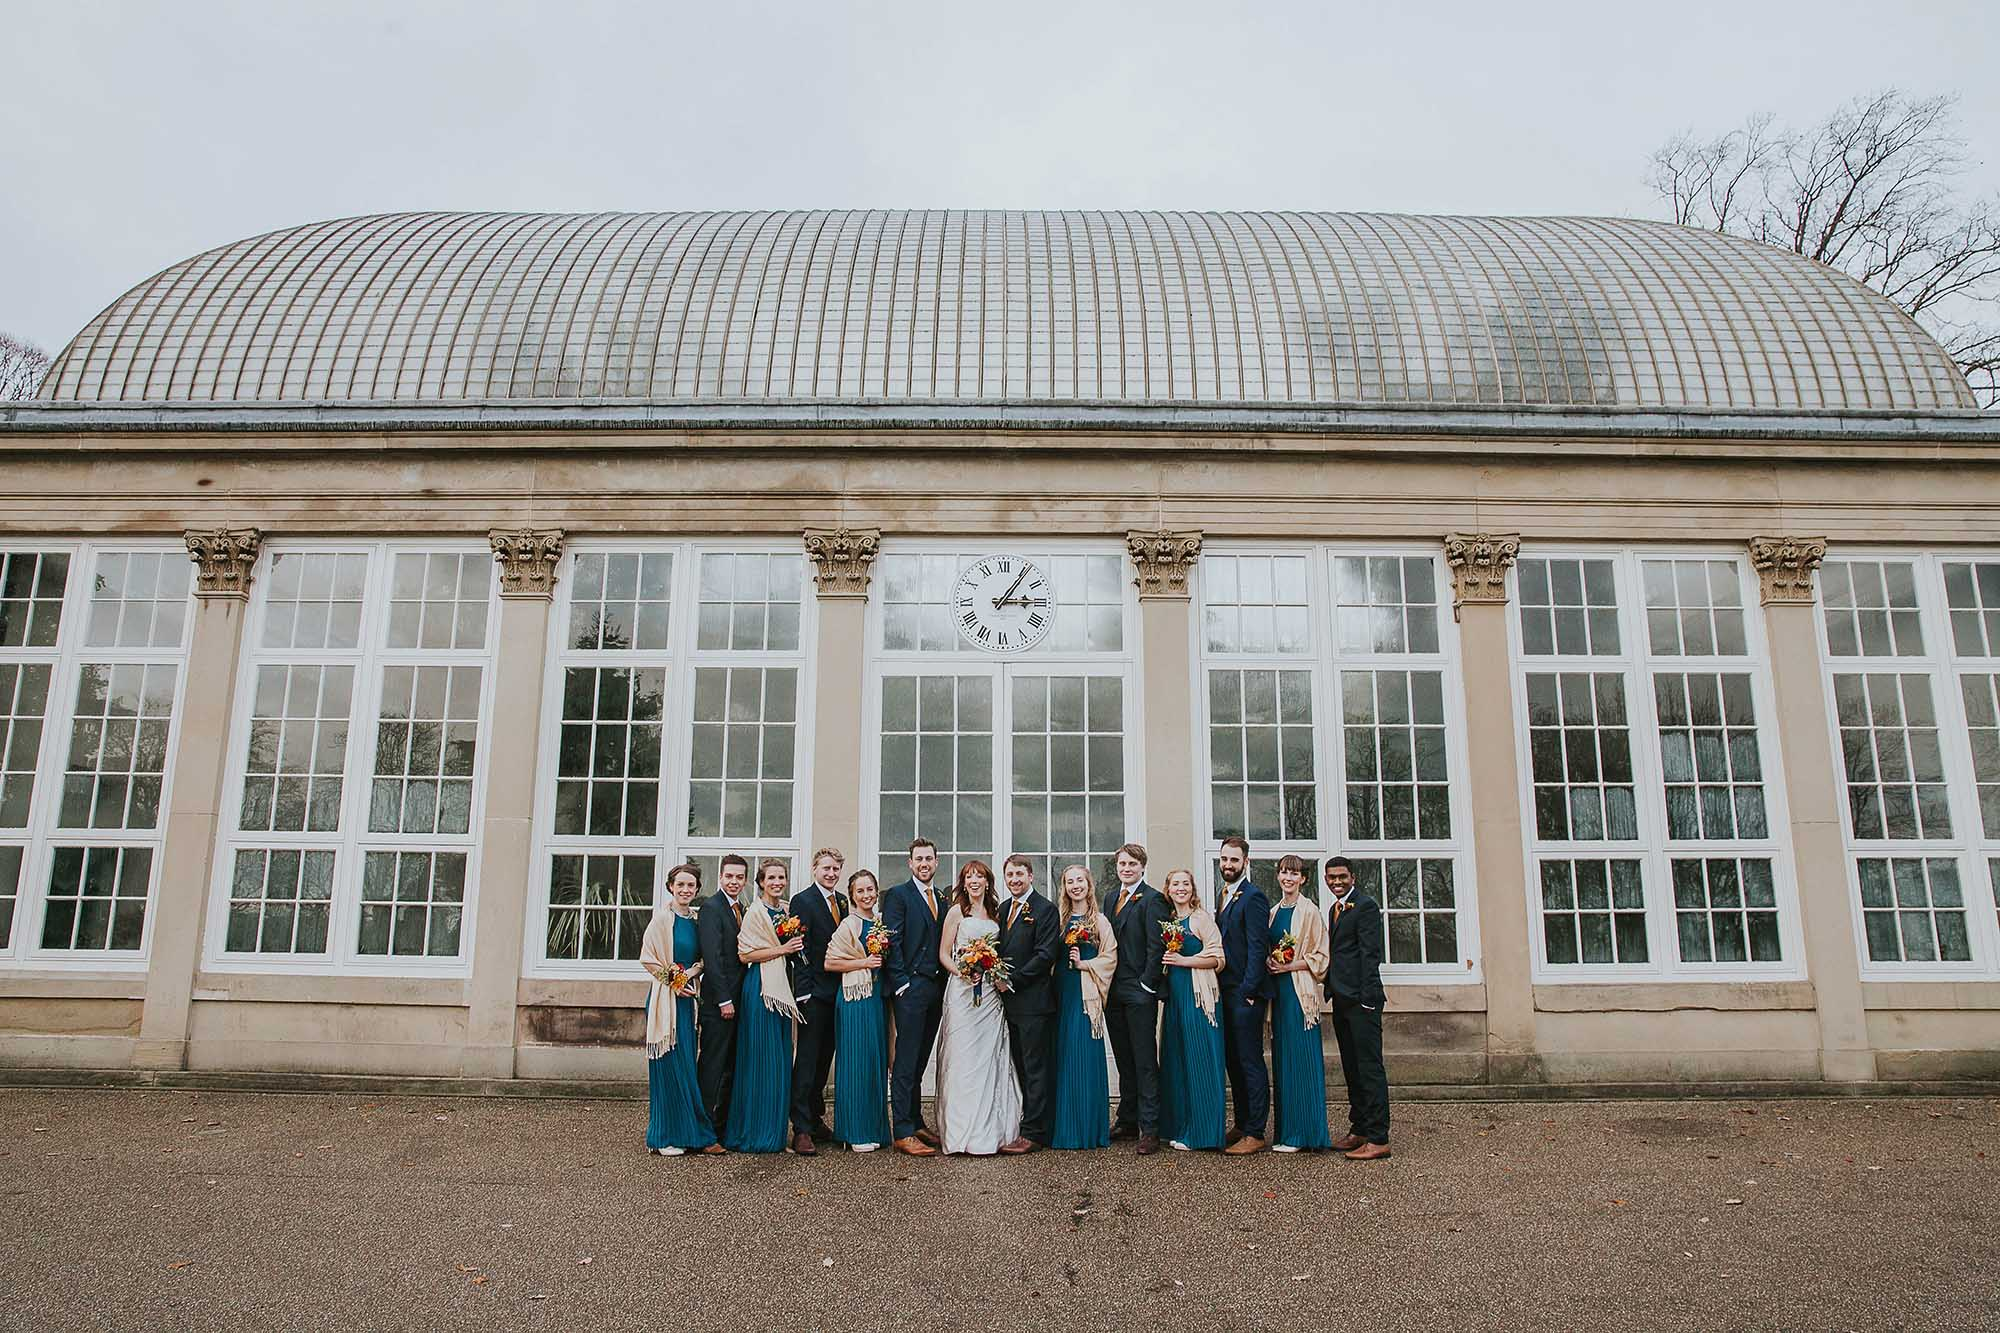 Sheffield botanical gardens wedding party